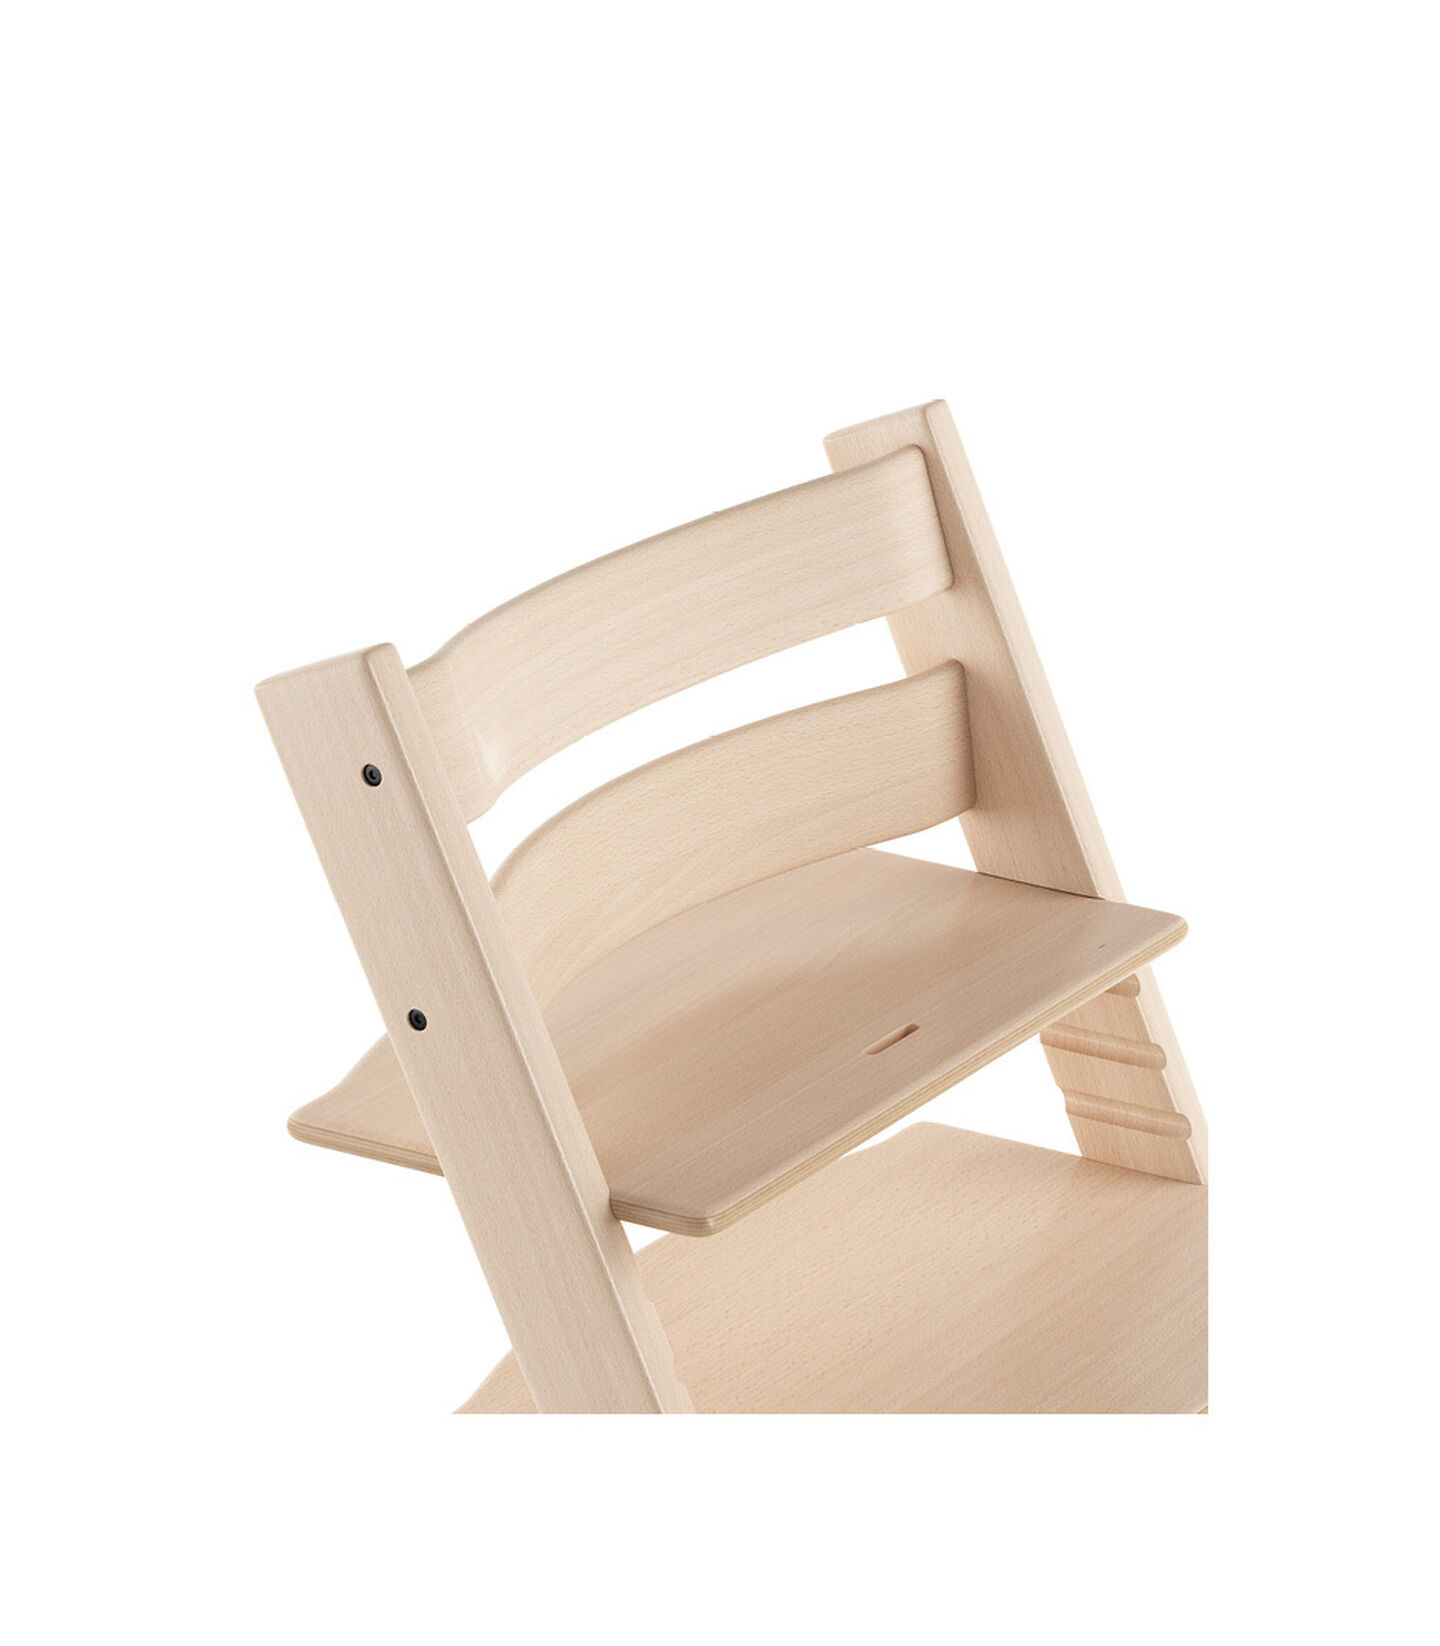 Tripp Trapp® Chair close up 3D rendering Natural